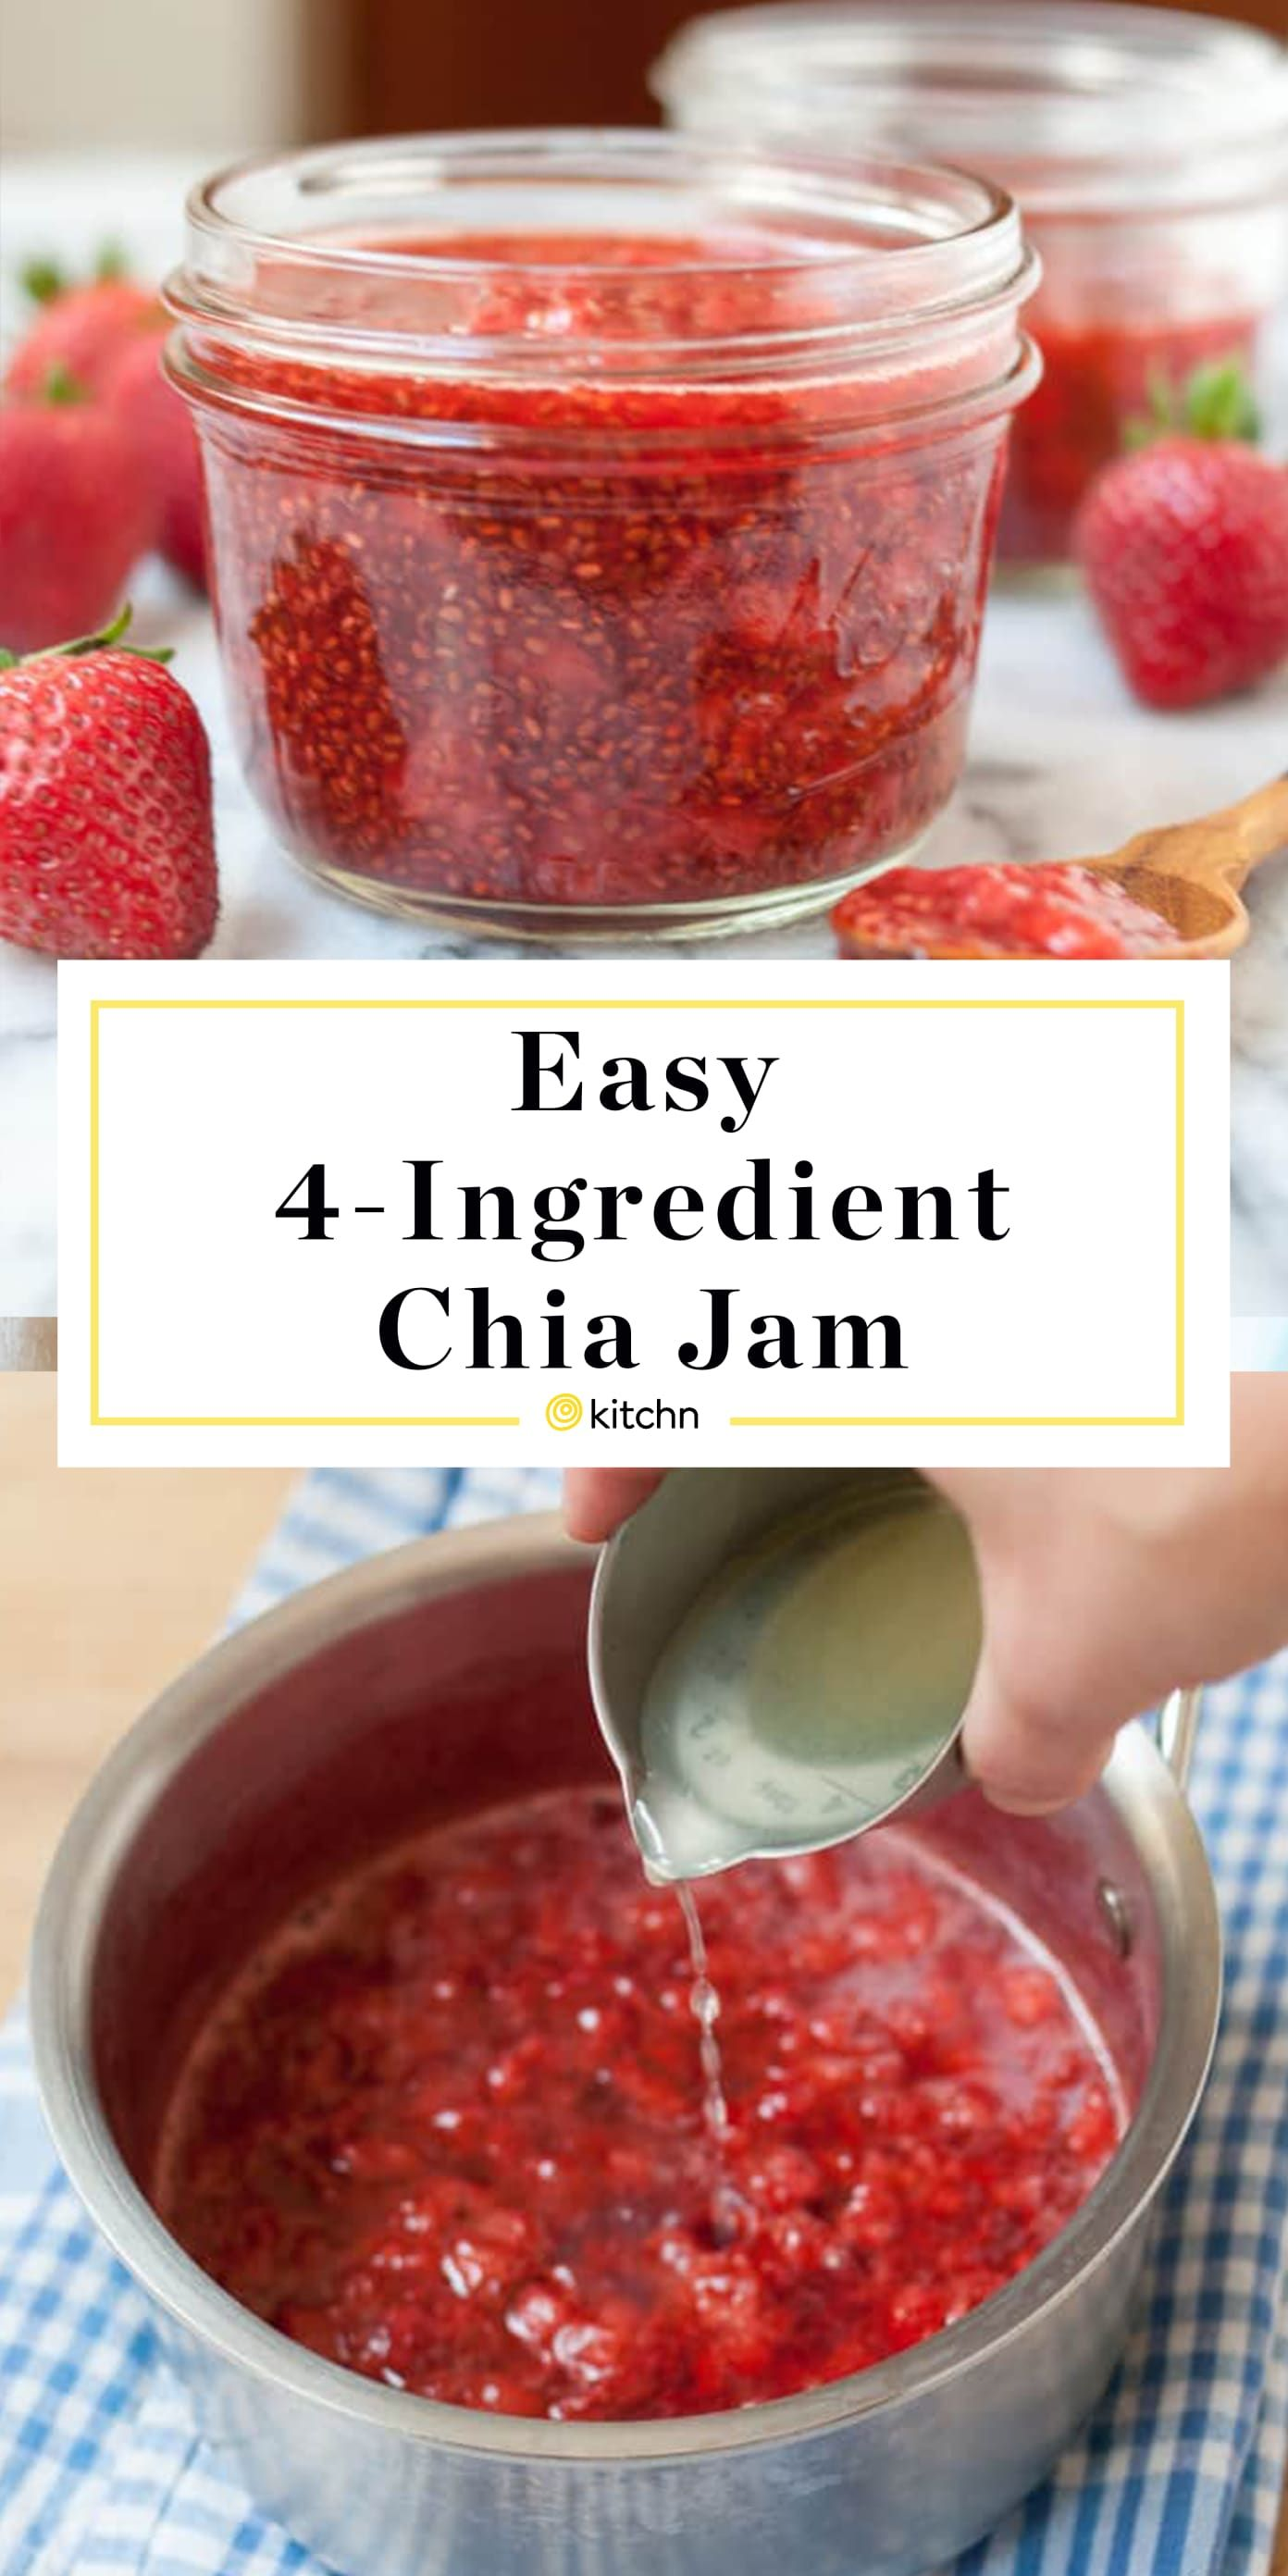 How To Turn Any Fruit Into Low Sugar Jam In Just 20 Minutes Recipe In 2020 Chia Jam What Is Healthy Food Jam